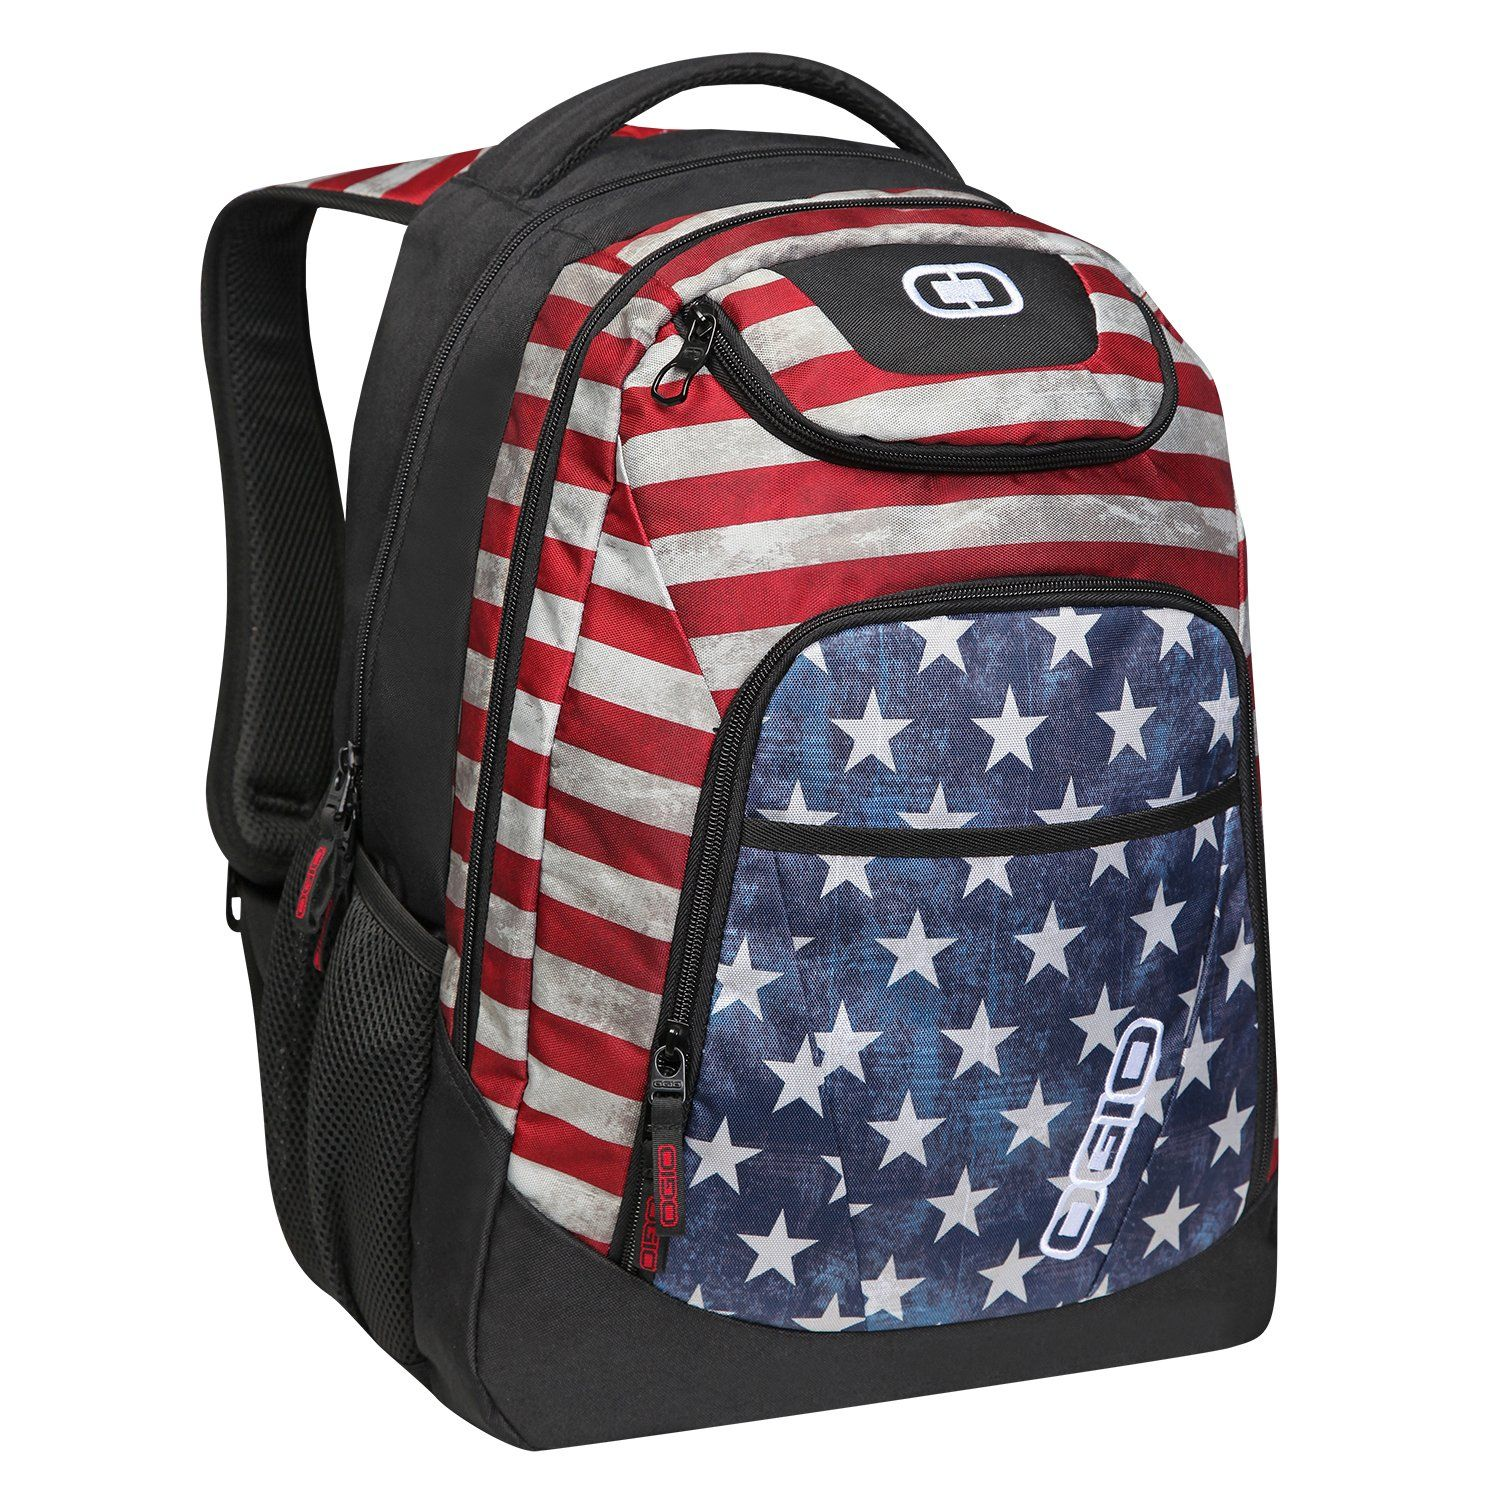 192d6a1a1a5 OGIO International Tribune Backpack